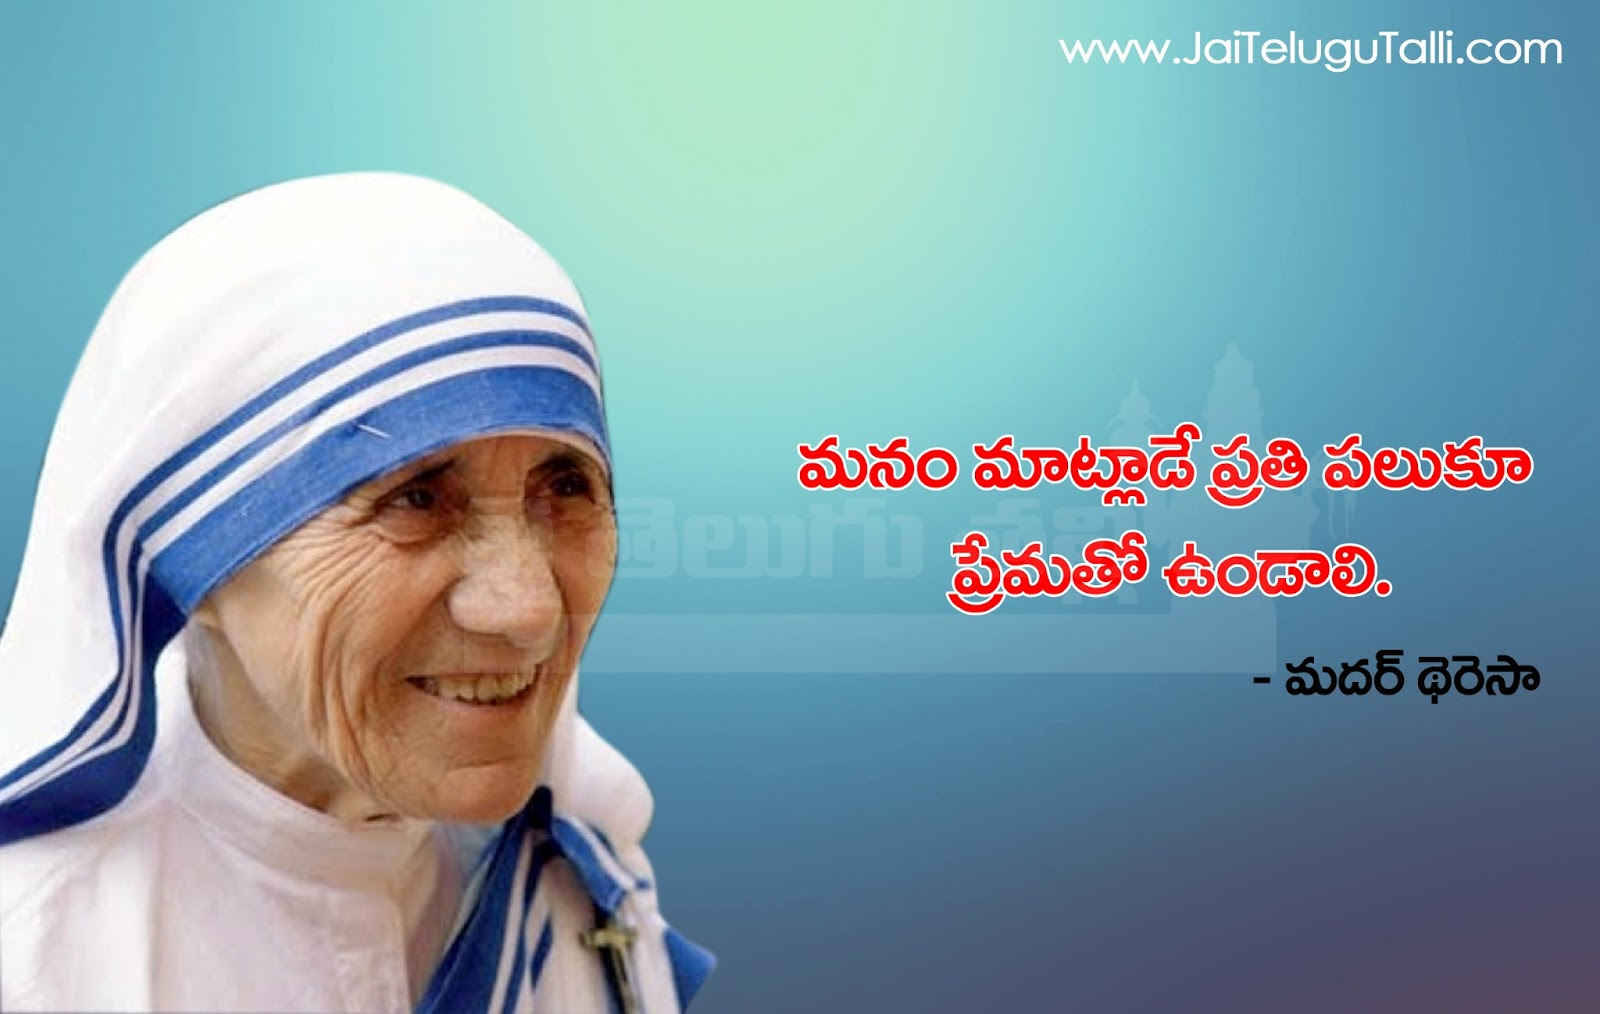 Telugu Bible Quotes Hd Wallpapers Download Mother Teresa Wallpaper Gallery